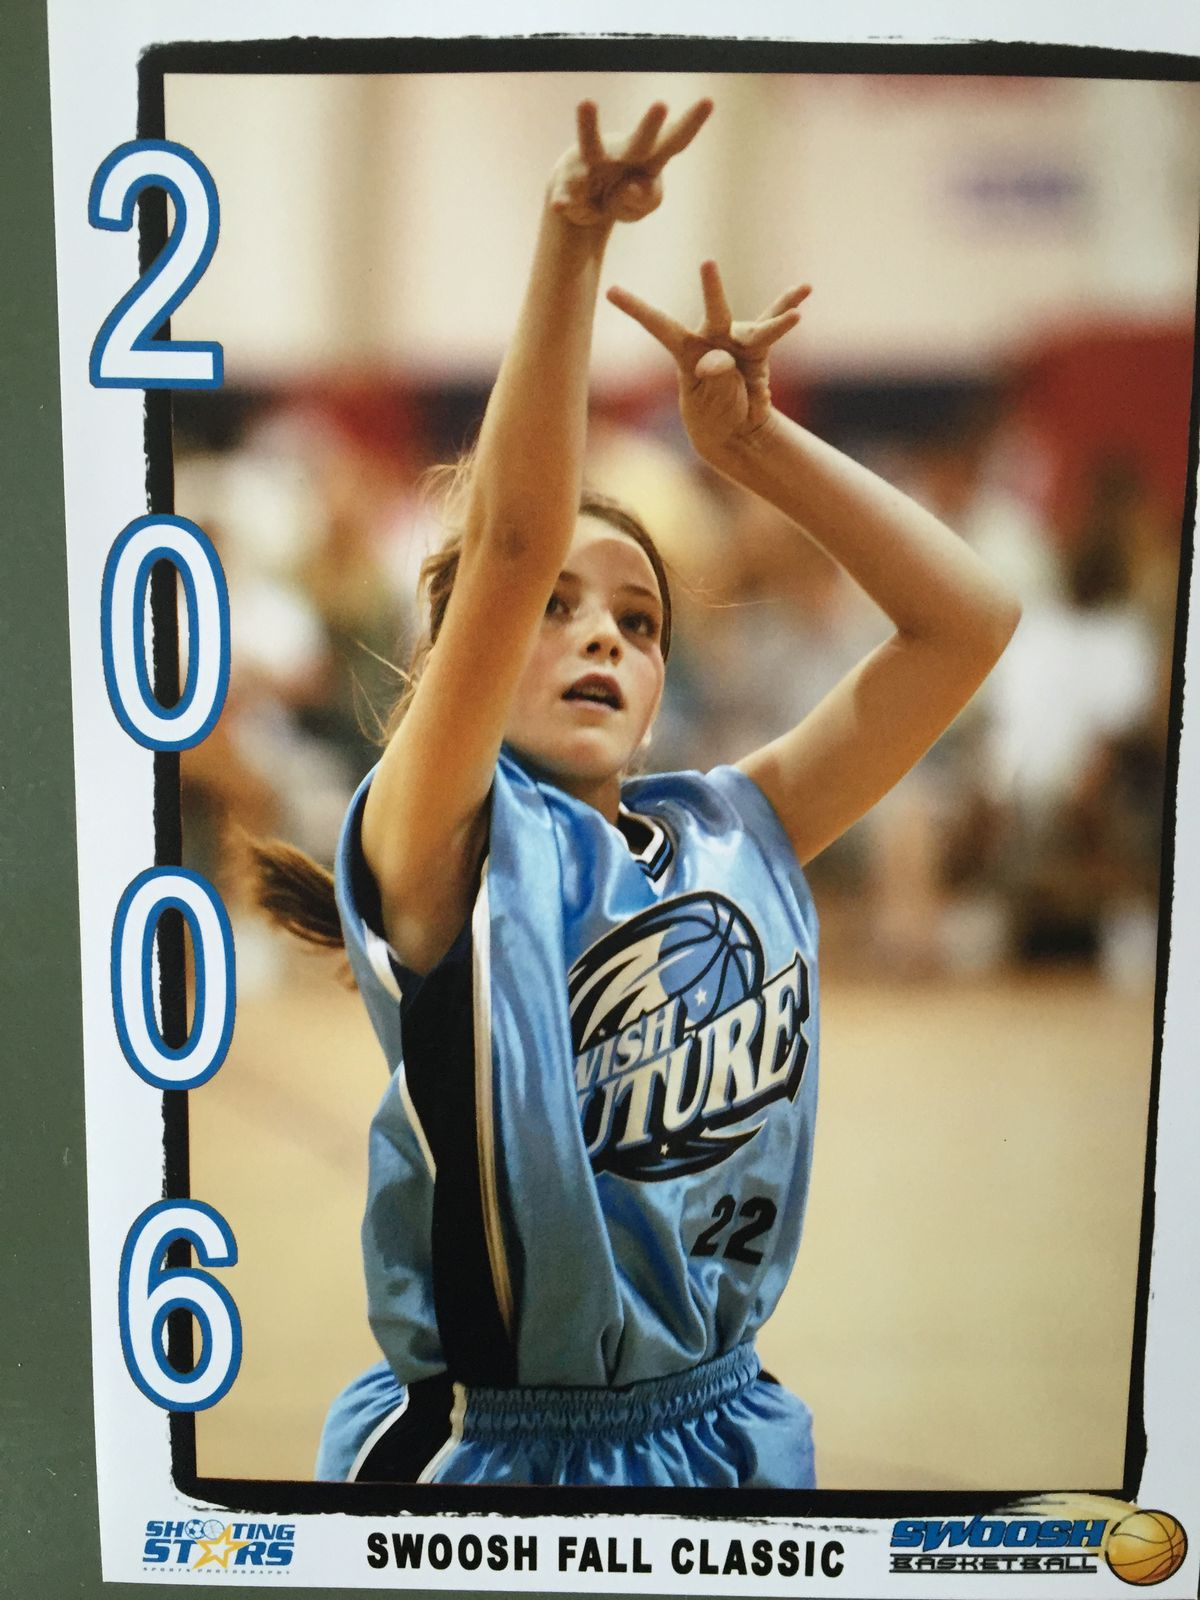 Katie Lou Samuelson playing basketball in 2006. | Provided